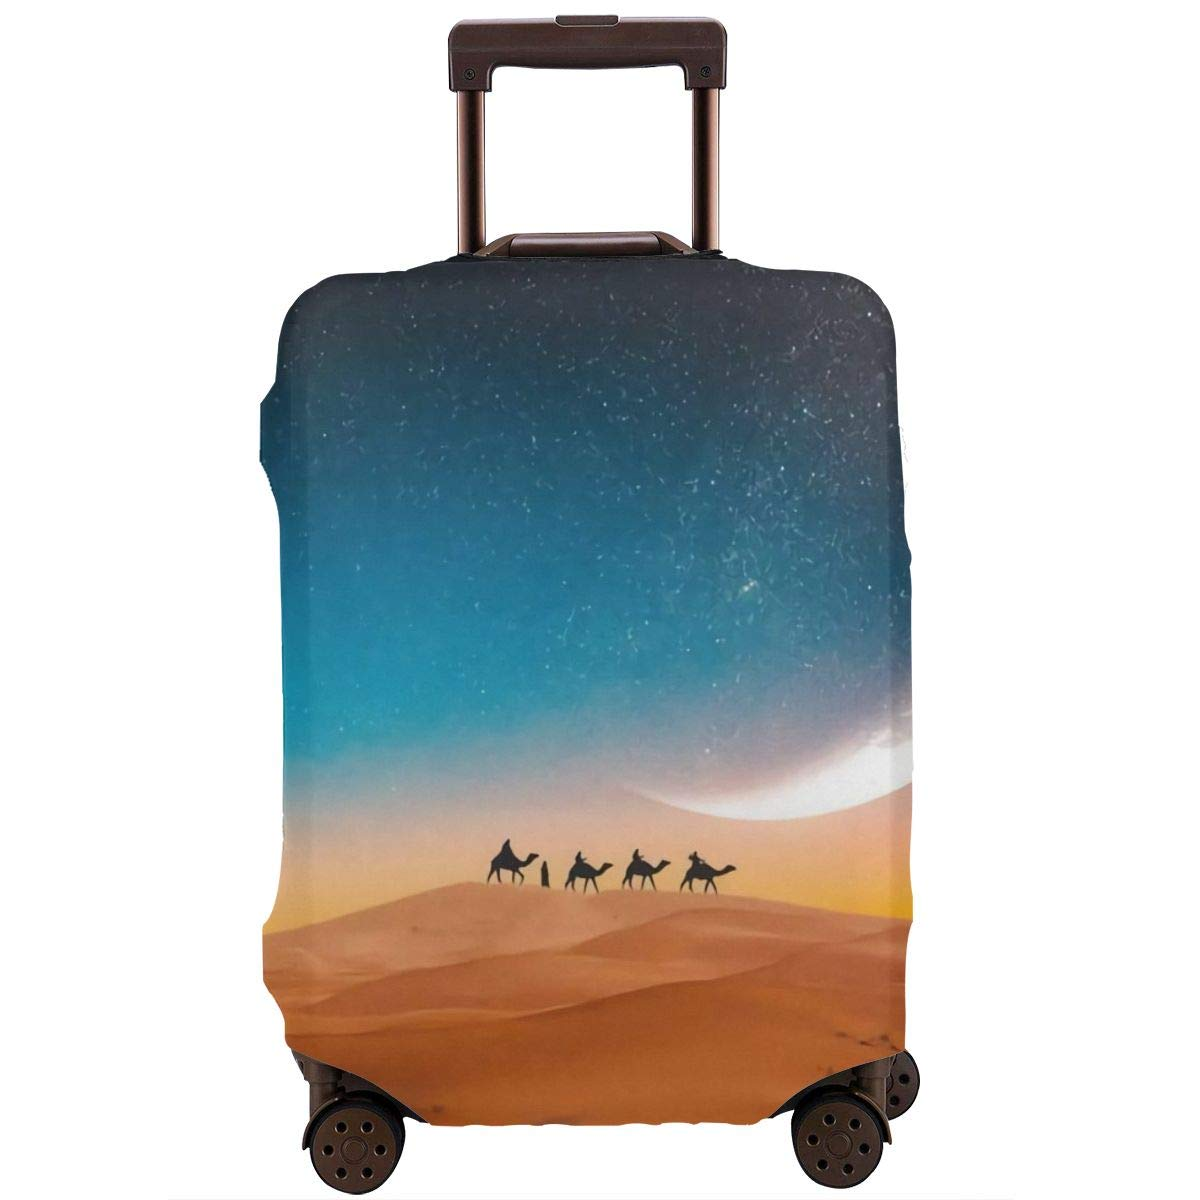 Travel Luggage Cover Suitcase Protector Spandex Washable Zipper Baggage Covers Sunset Morocco Desert Camel Fit 18 To 32 Inch